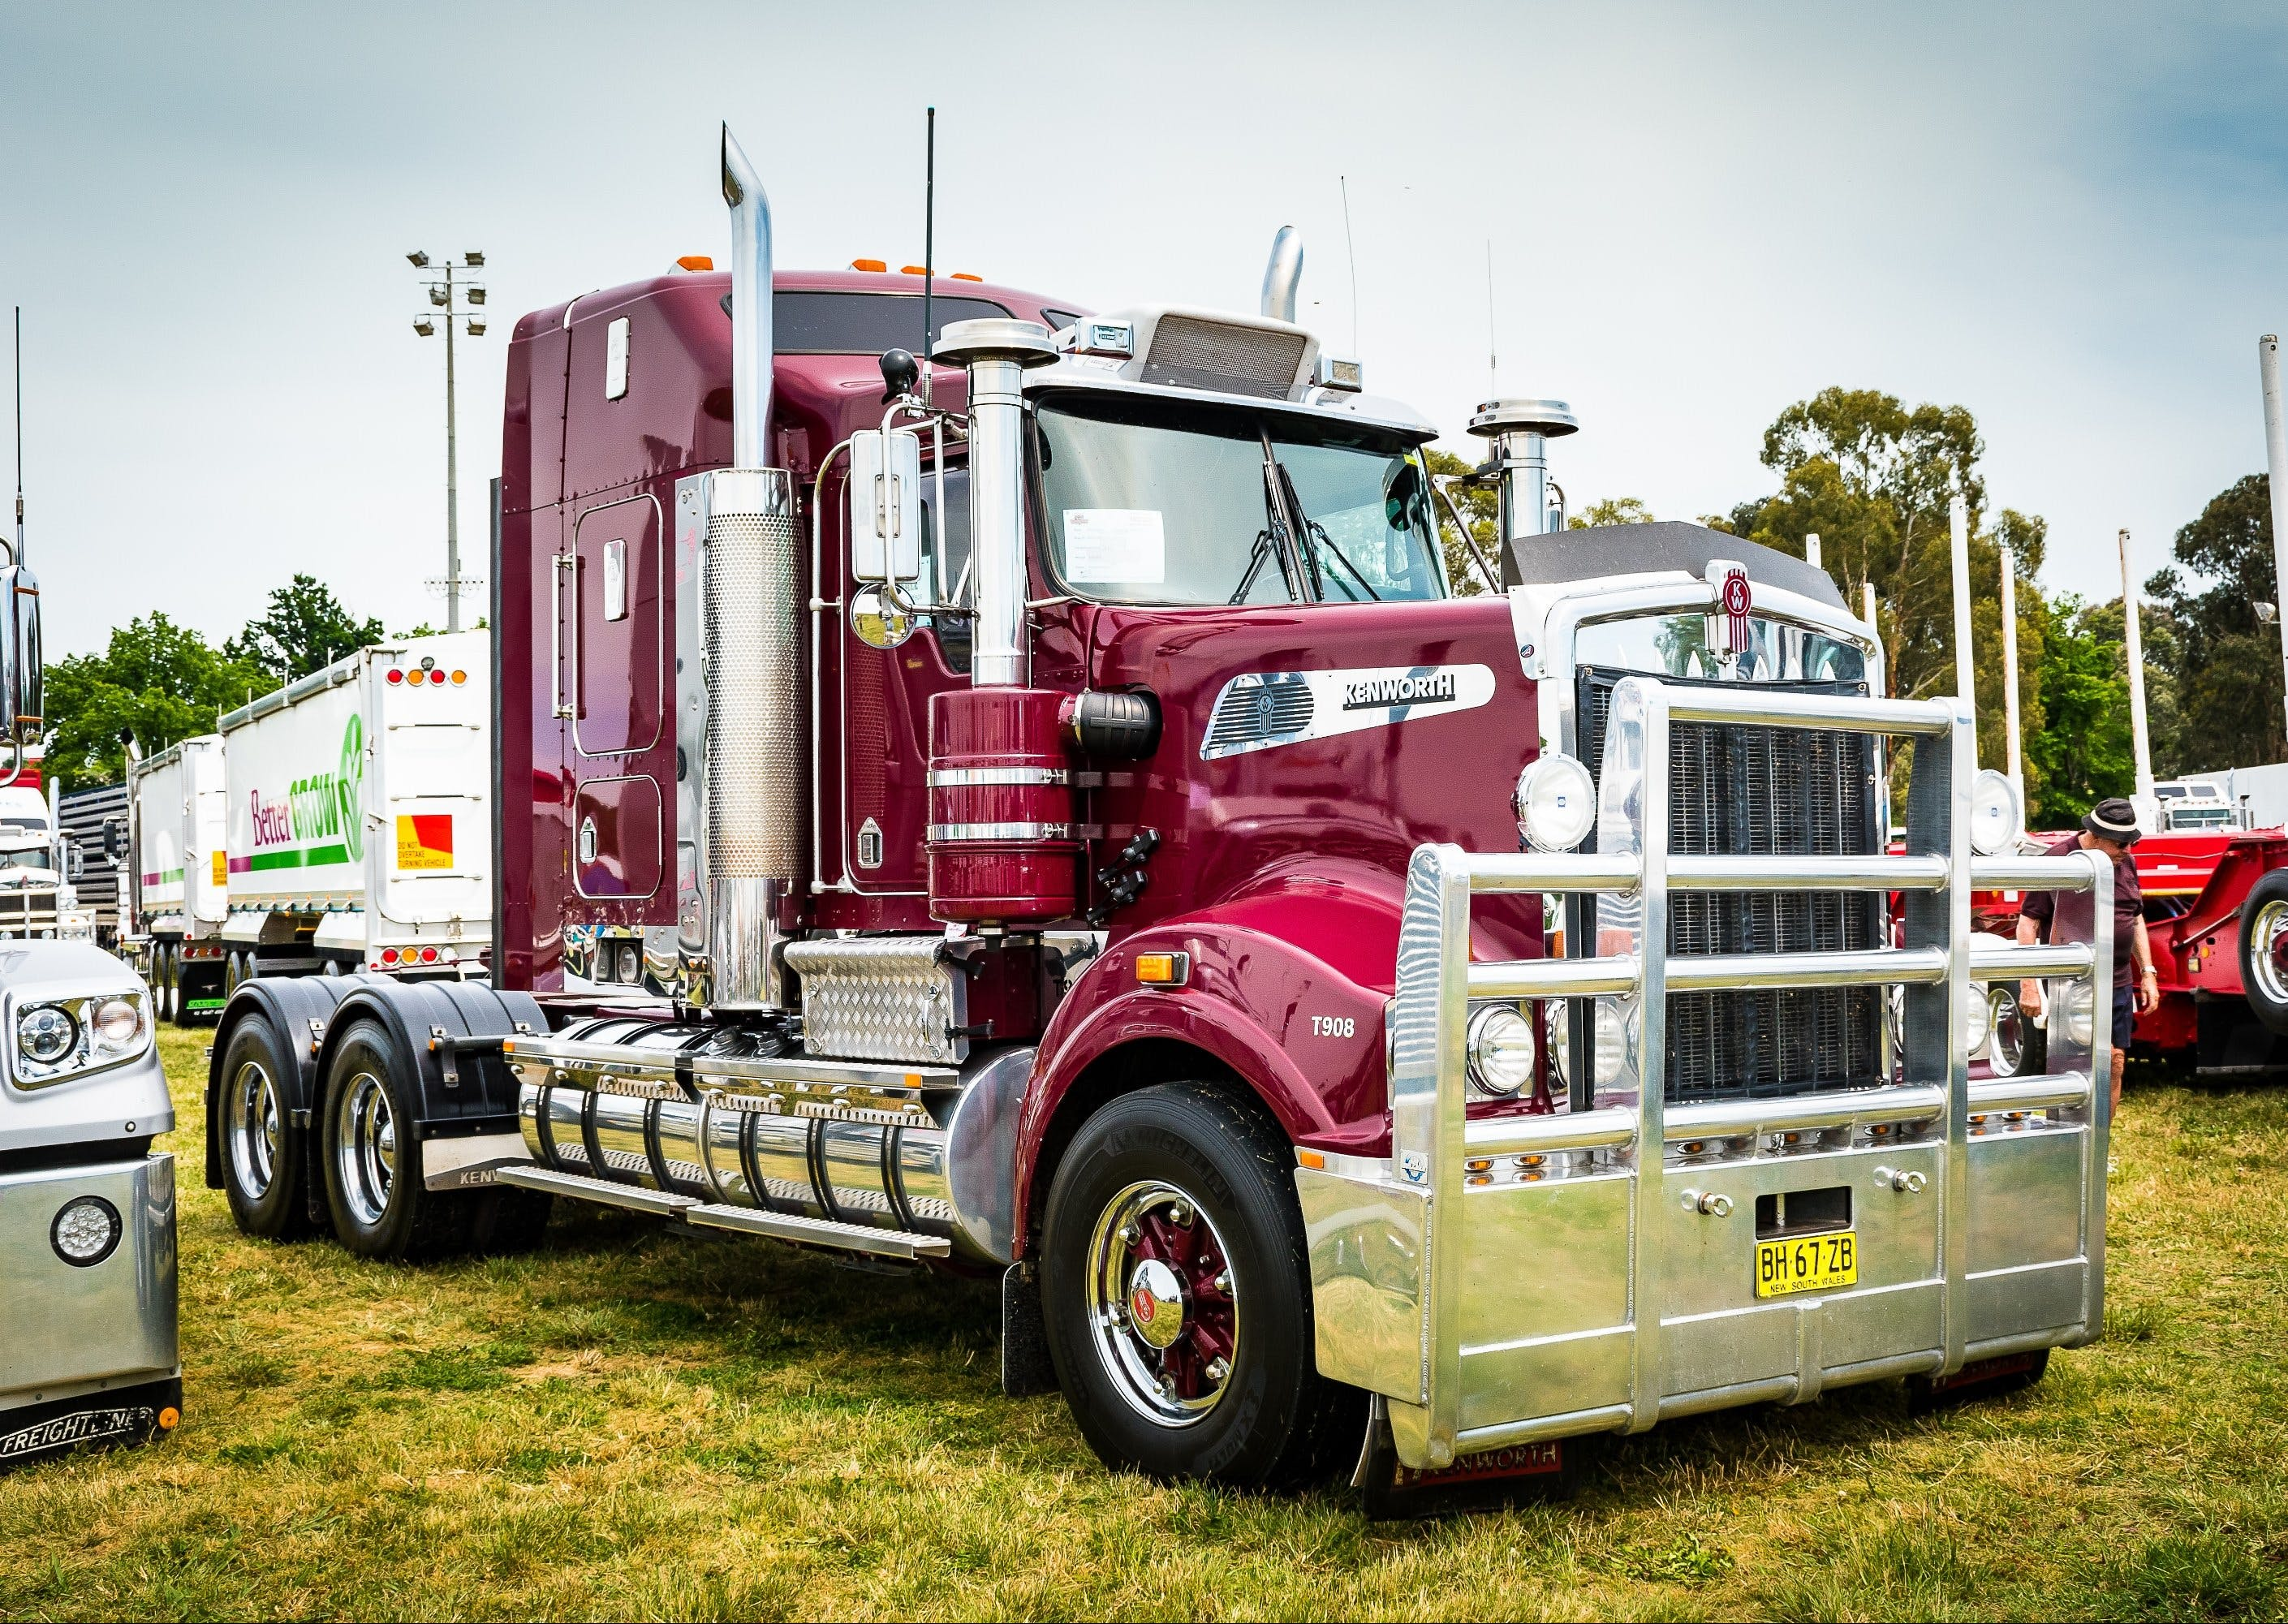 Dane Ballinger Memorial Truck Show - Accommodation in Brisbane